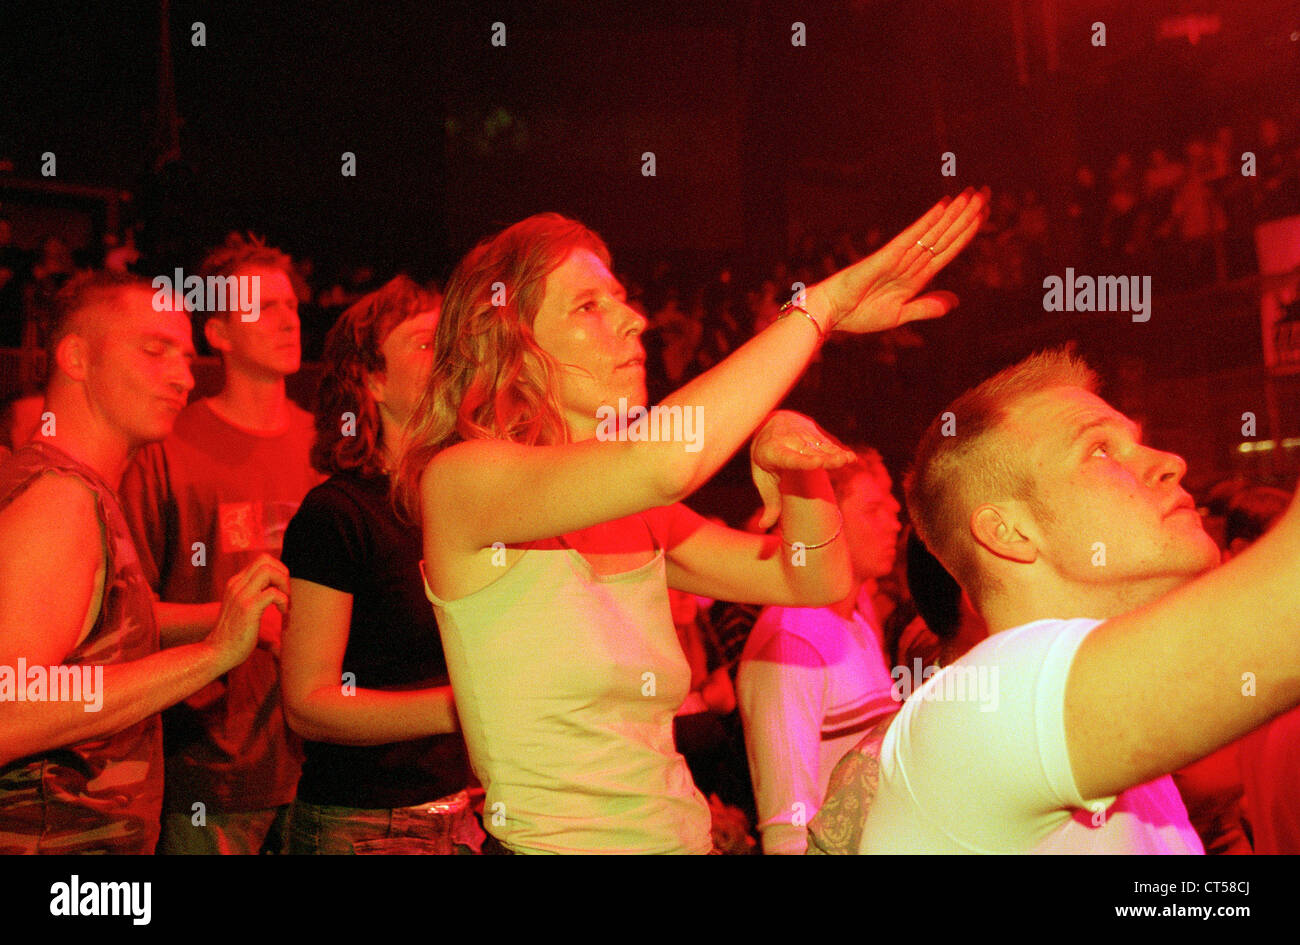 Berlin dance, young people and celebrate on a techno party